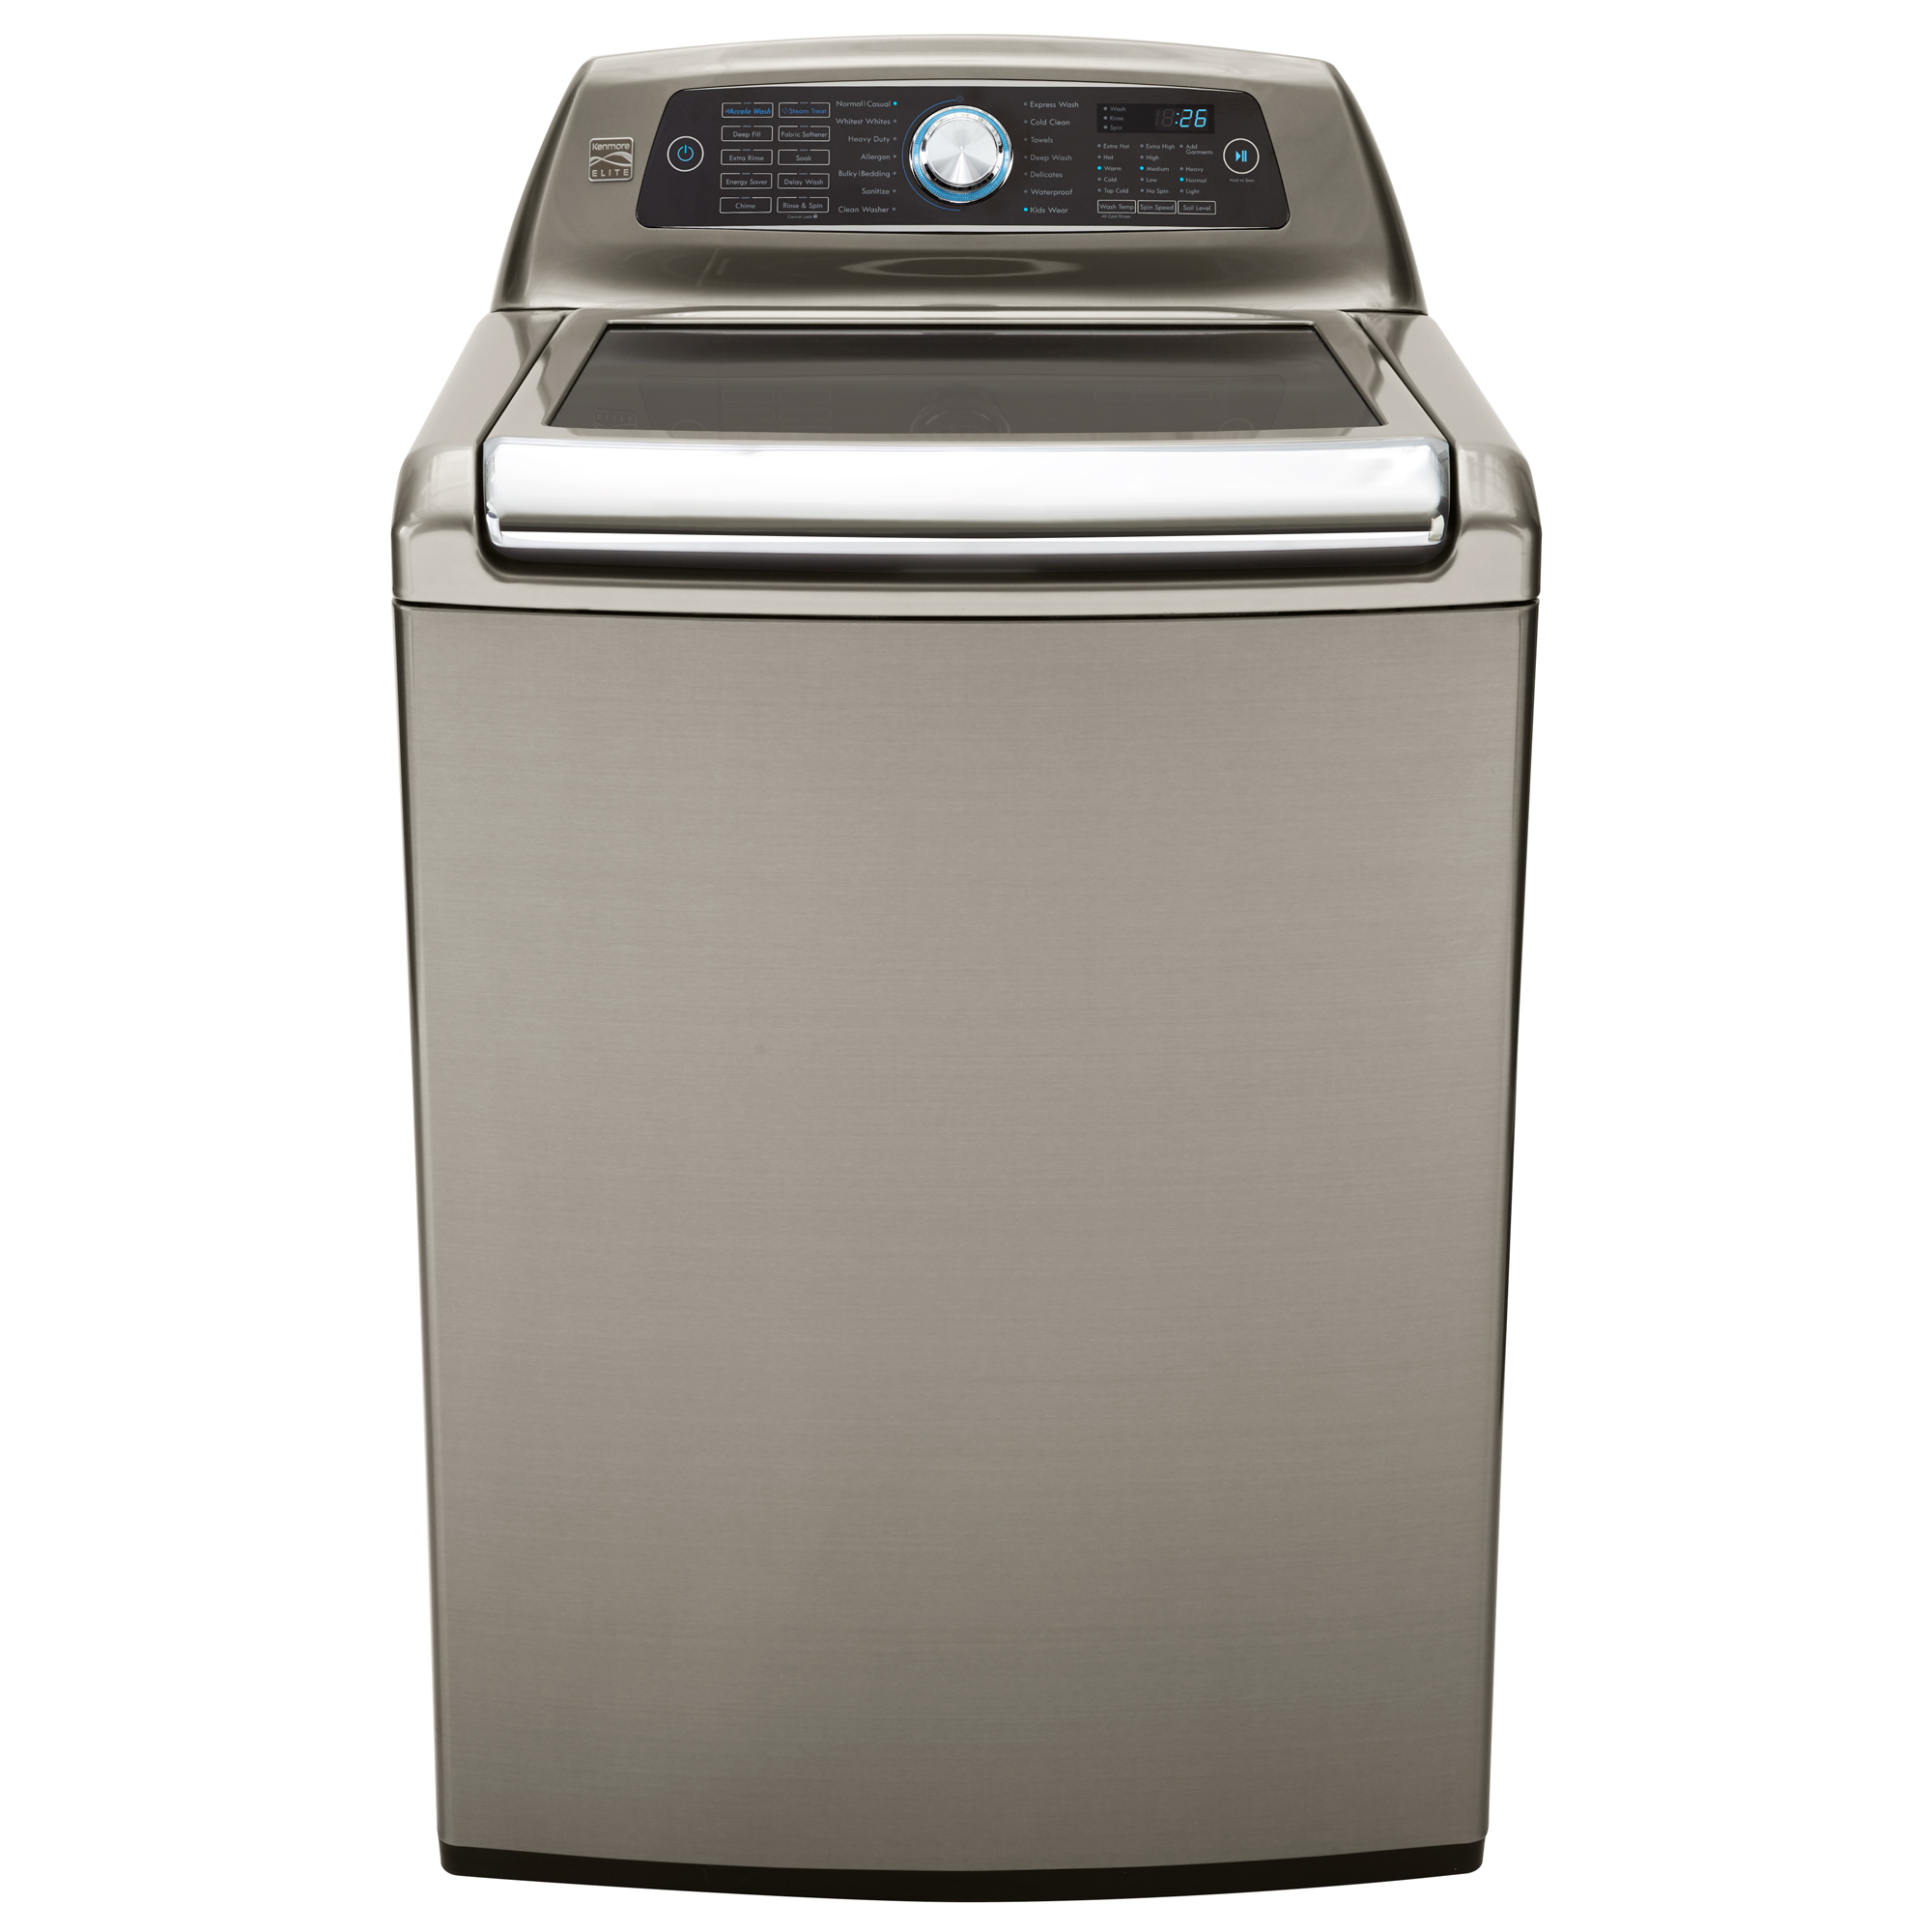 small resolution of kenmore elite 31553 5 2 cu ft top load washer w accela wash gas dryer i d be happy for any sears gas dryer diagram just to